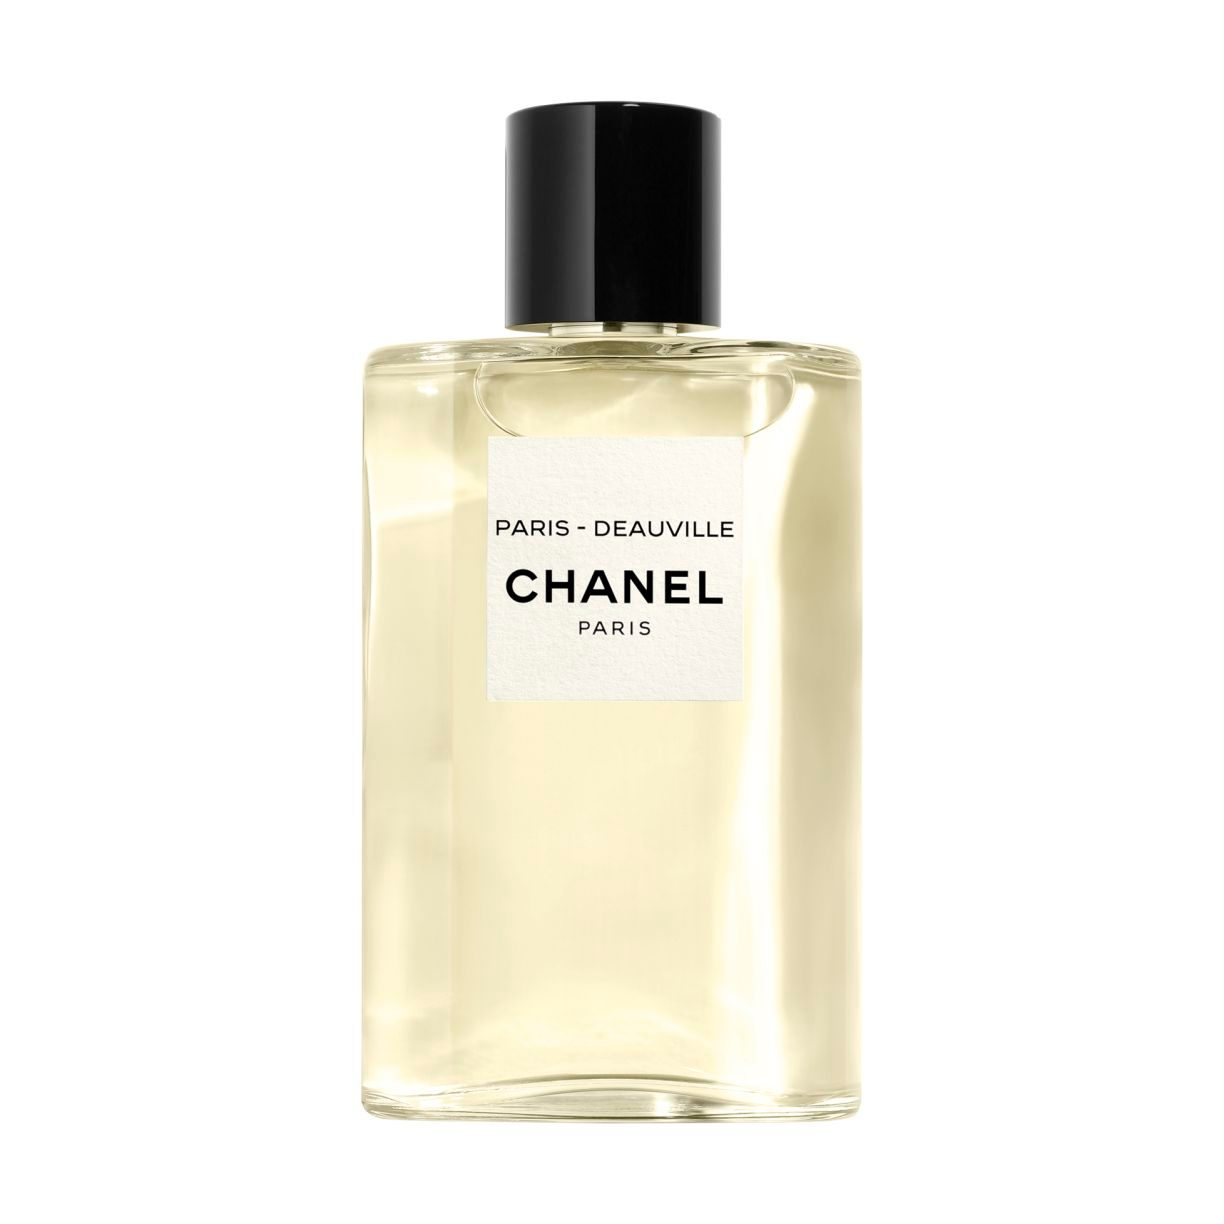 LES EAUX DE CHANEL PARIS - DEAUVILLE - EAU DE TOILETTE SPRAY